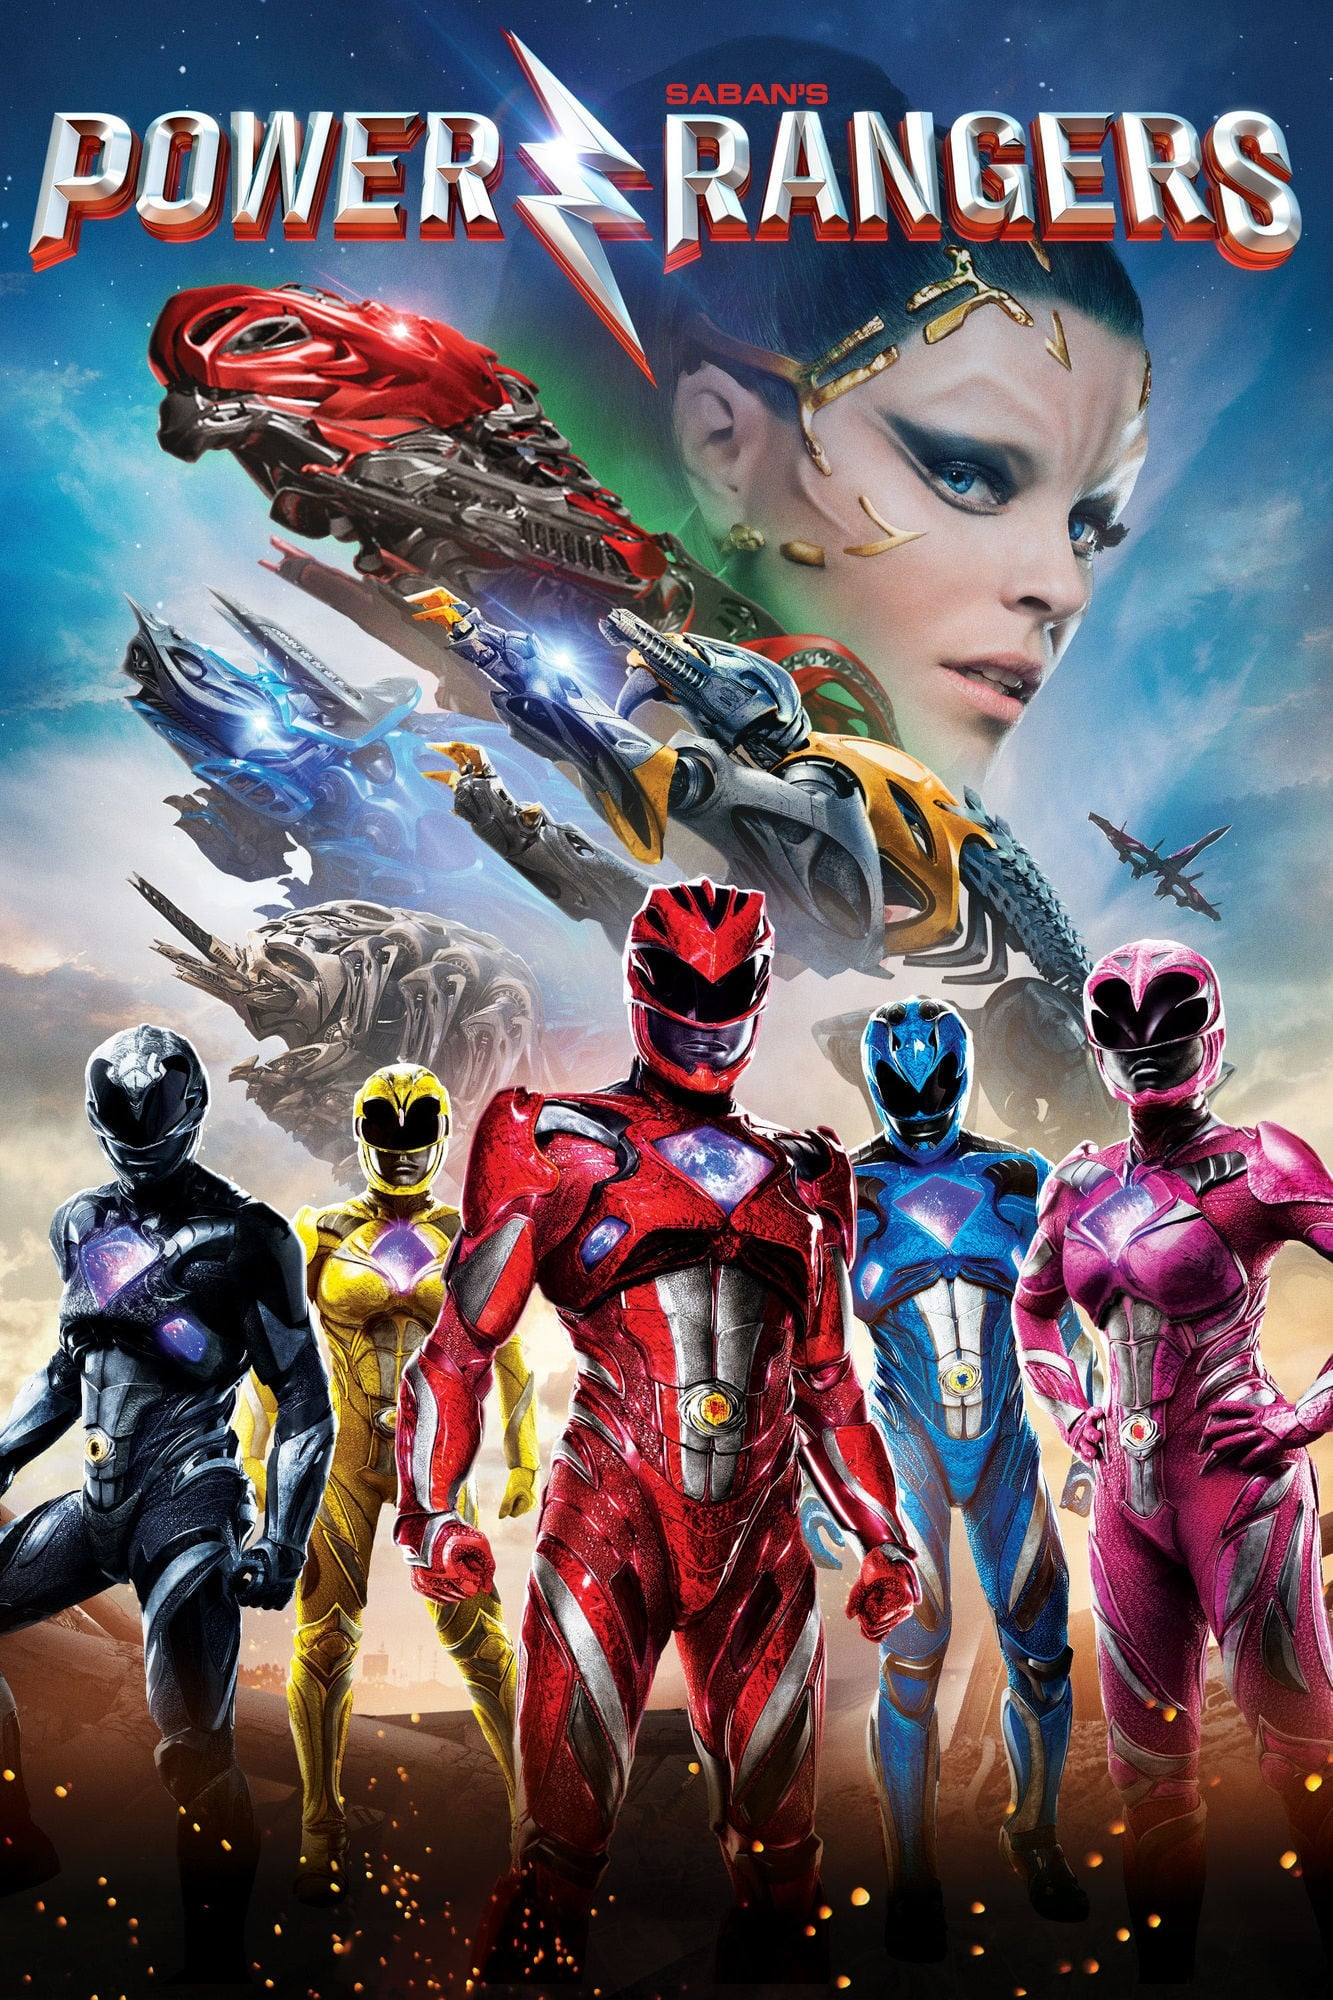 Assistir Power Rangers Legendado Online Legendado 1080p